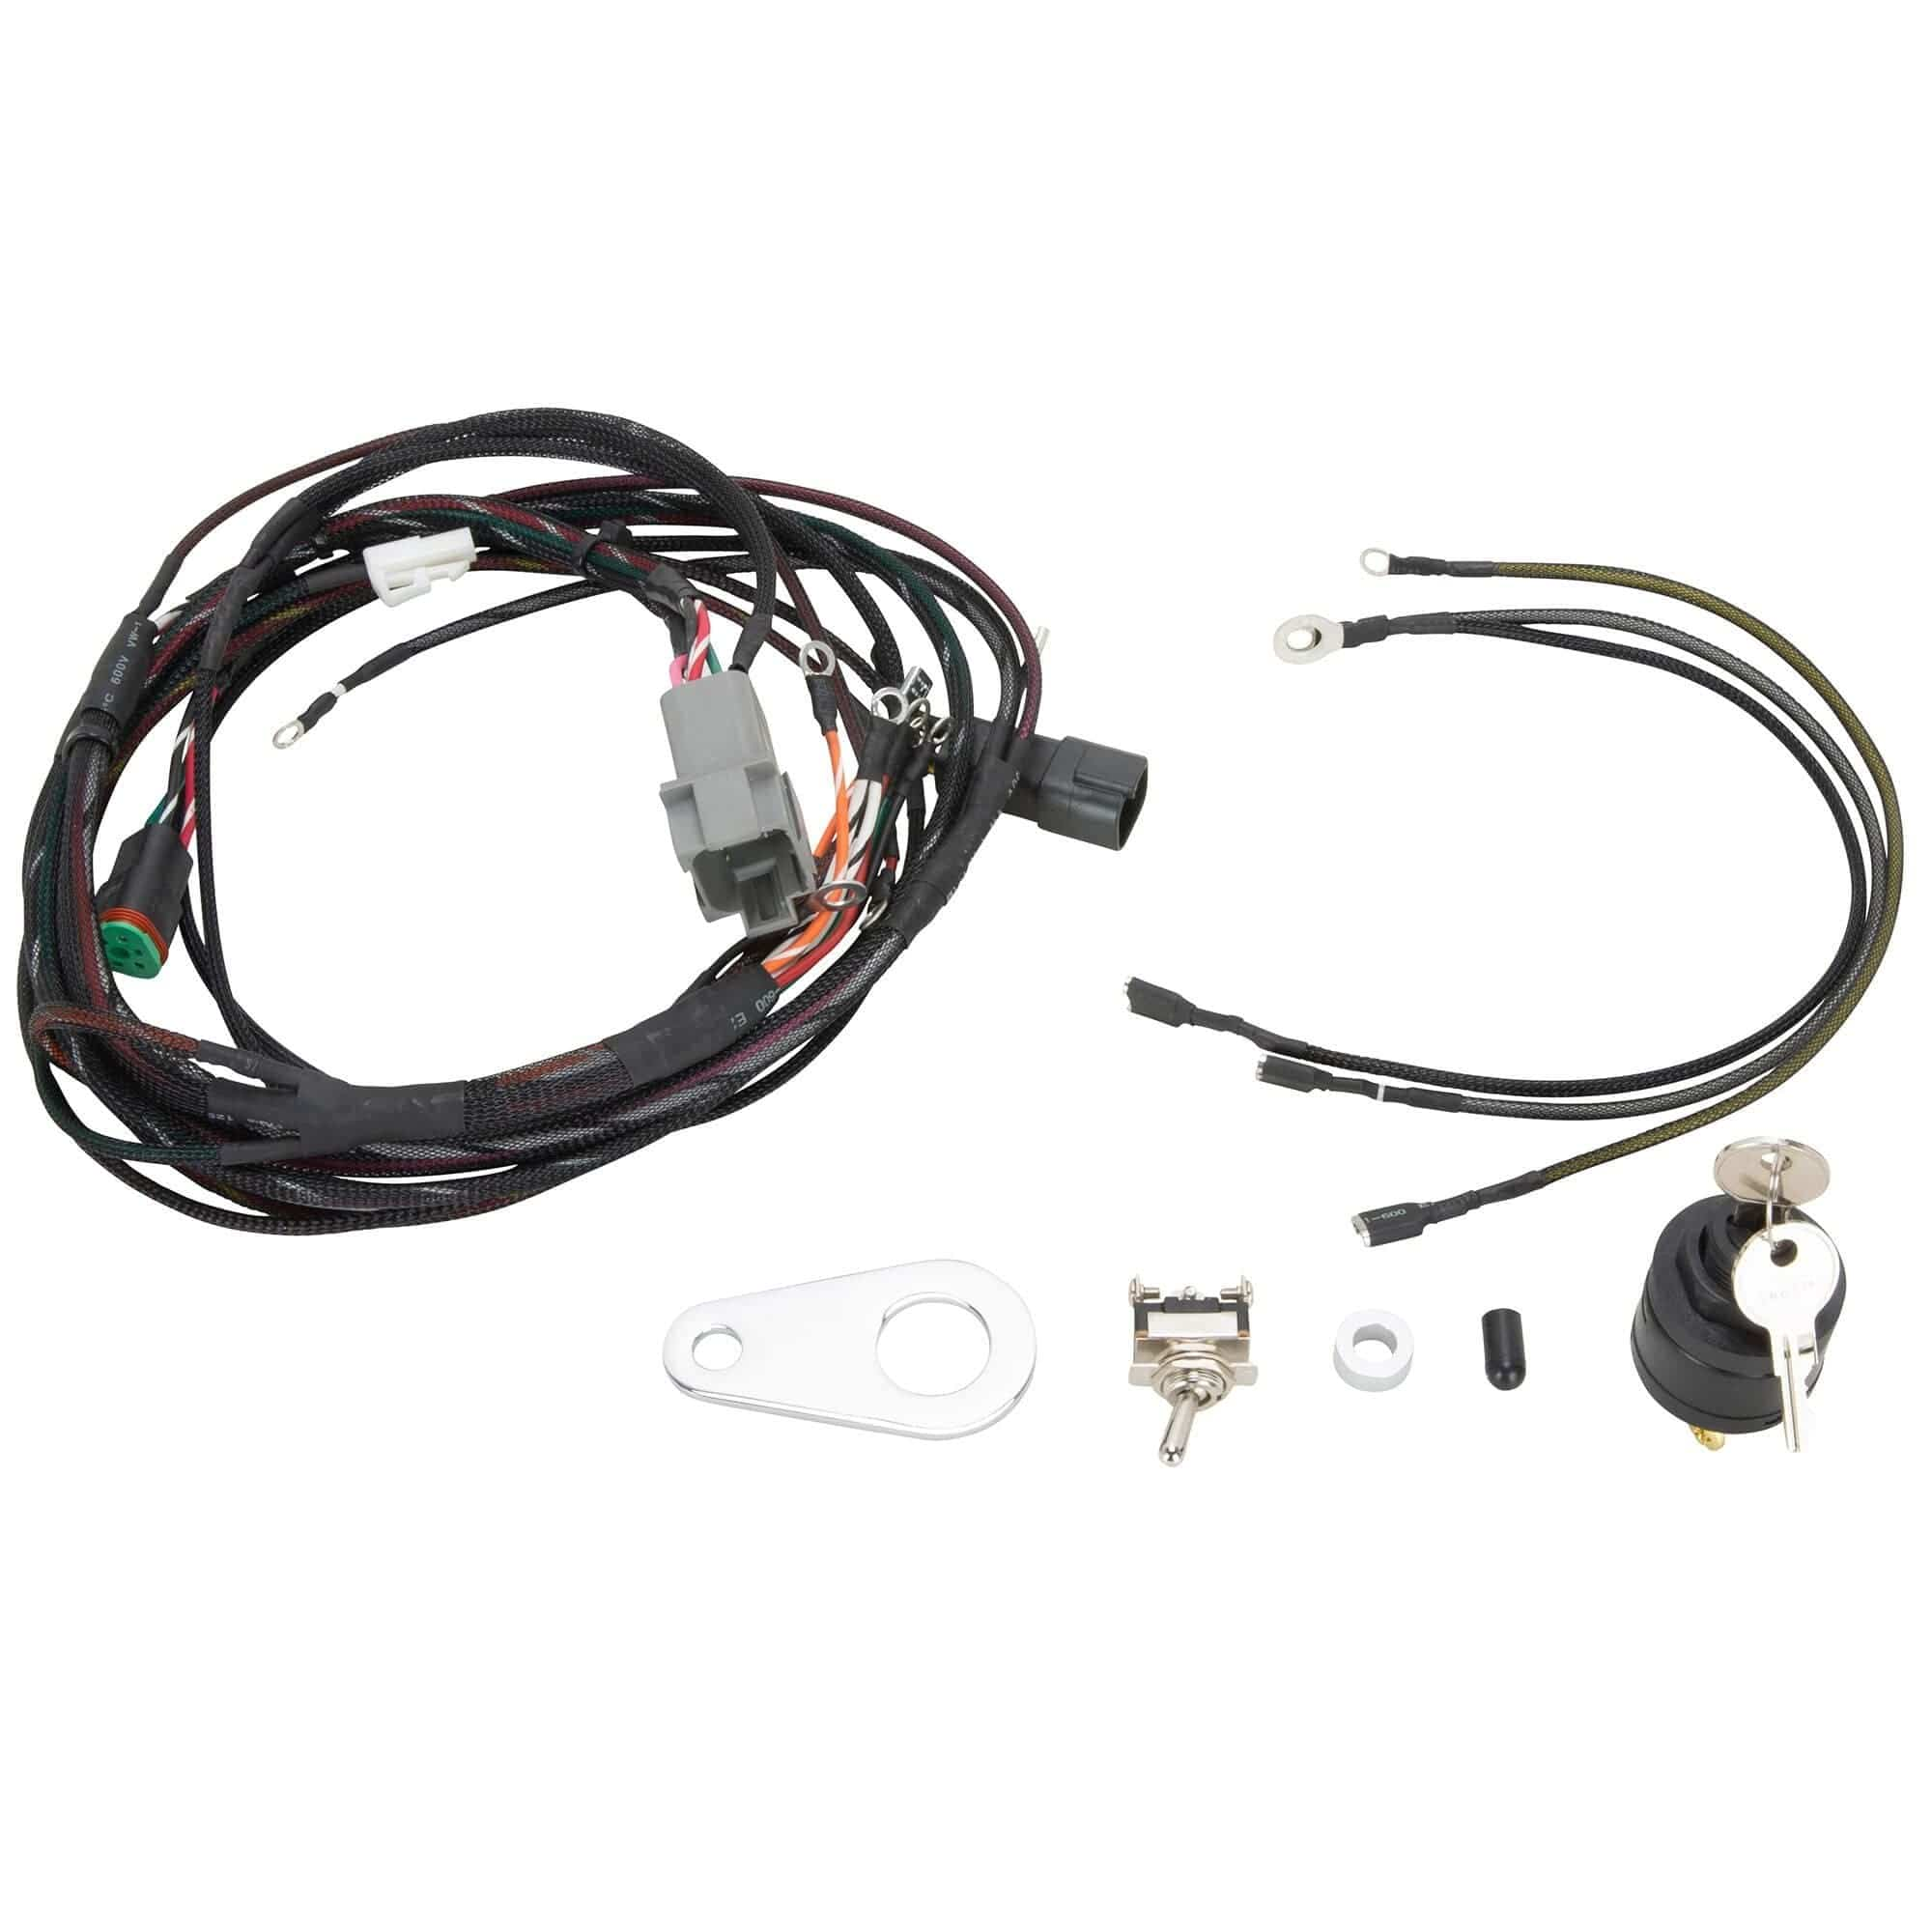 The Sportster Treatment Custom Wiring Harness Kit 1994-1996 Harley-Davidson  Sportster Models – Lowbrow CustomsLowbrow Customs